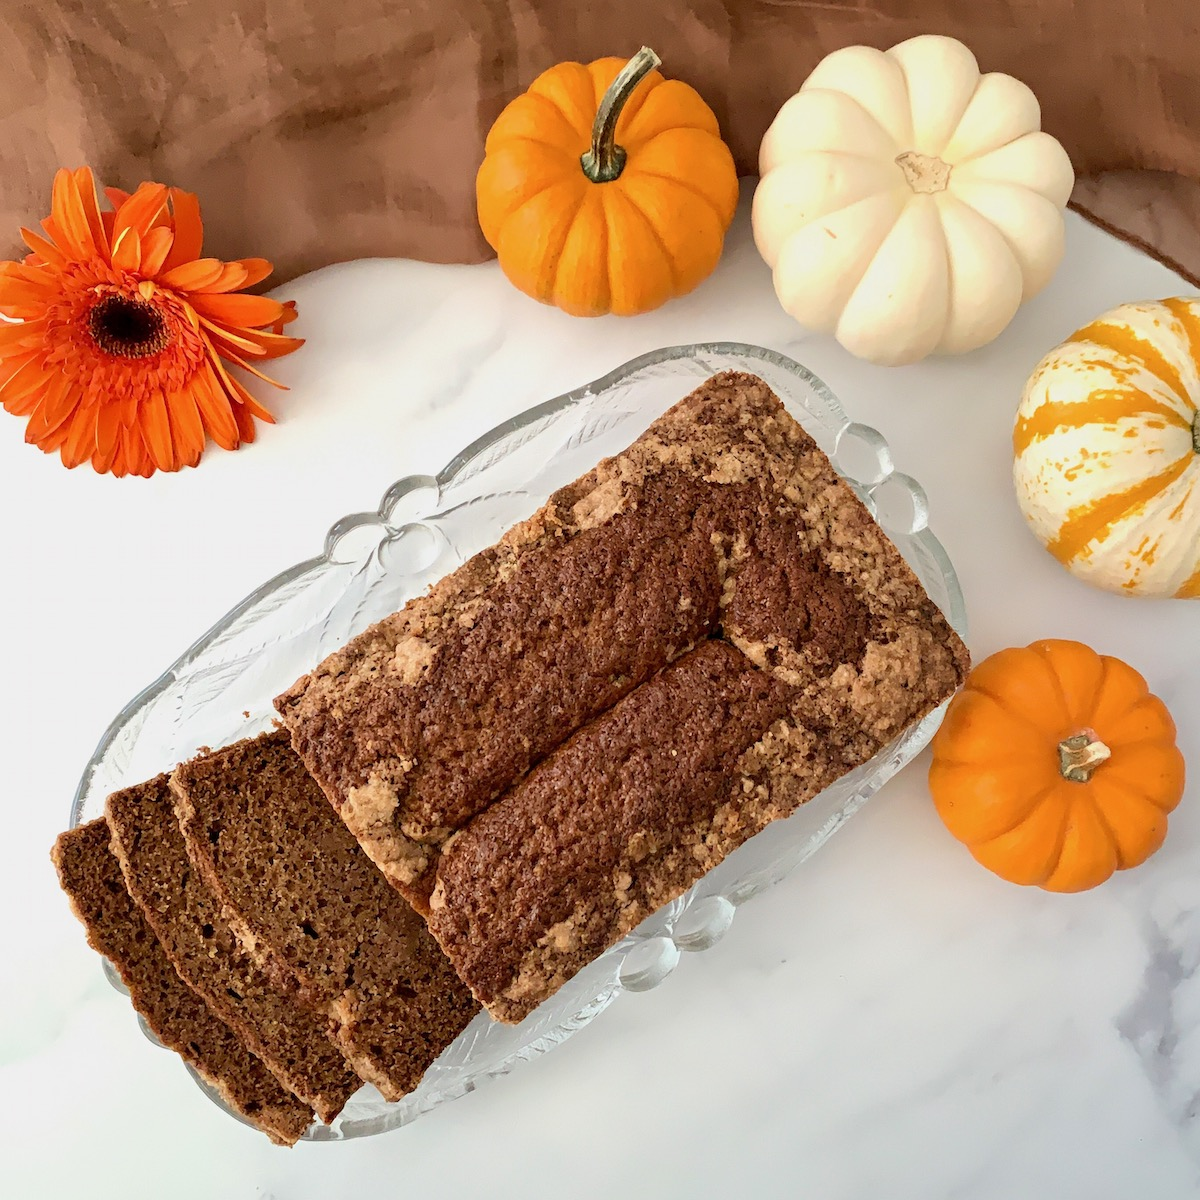 Sourdough Spice Cake sliced on plate with pumpkins overhead